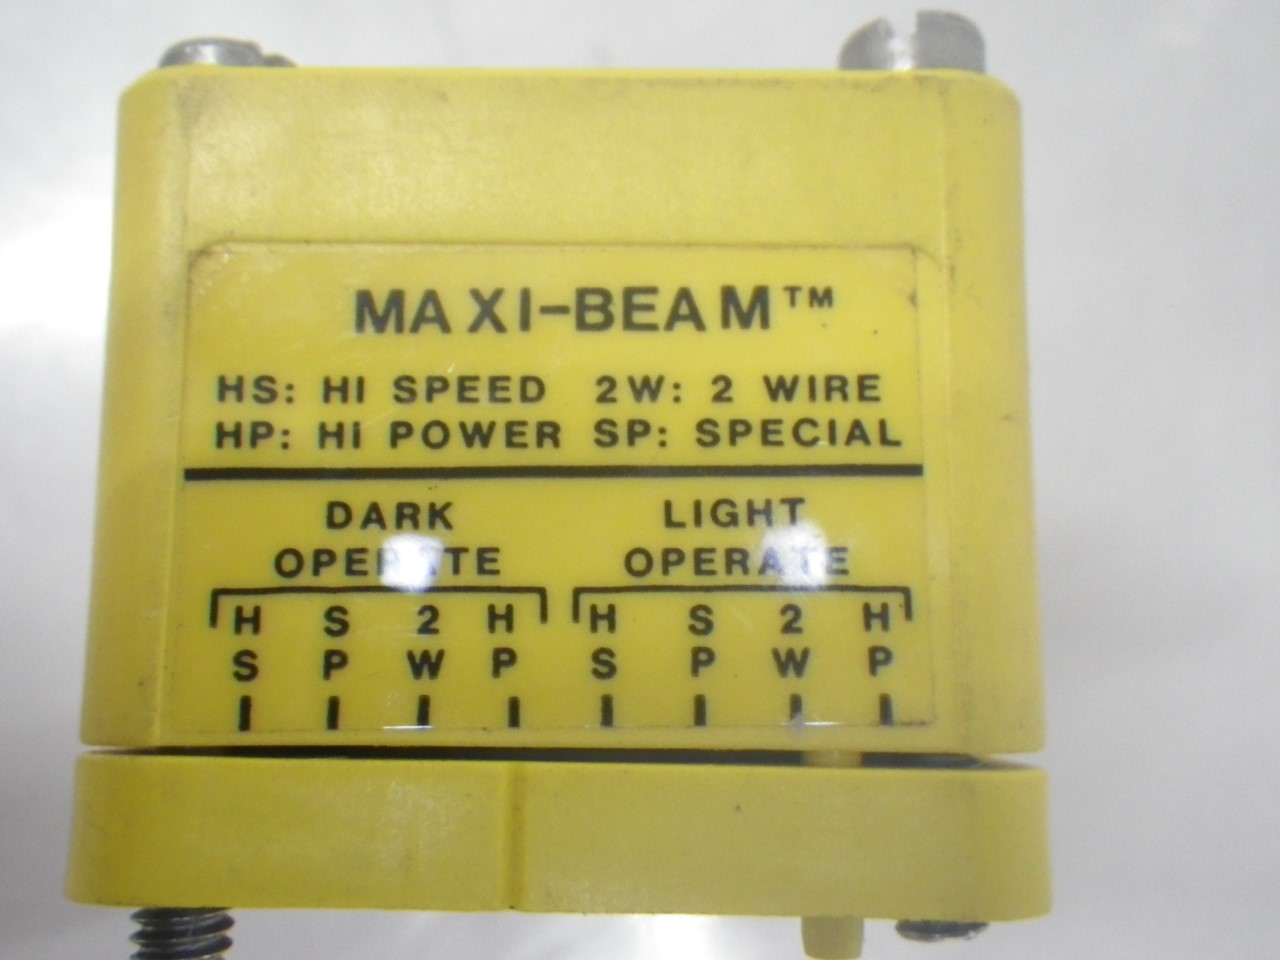 IMGP8425RSBF Banner Maxi-beam Photoelectric Sensor Head #9749A (Used Tested) (9)